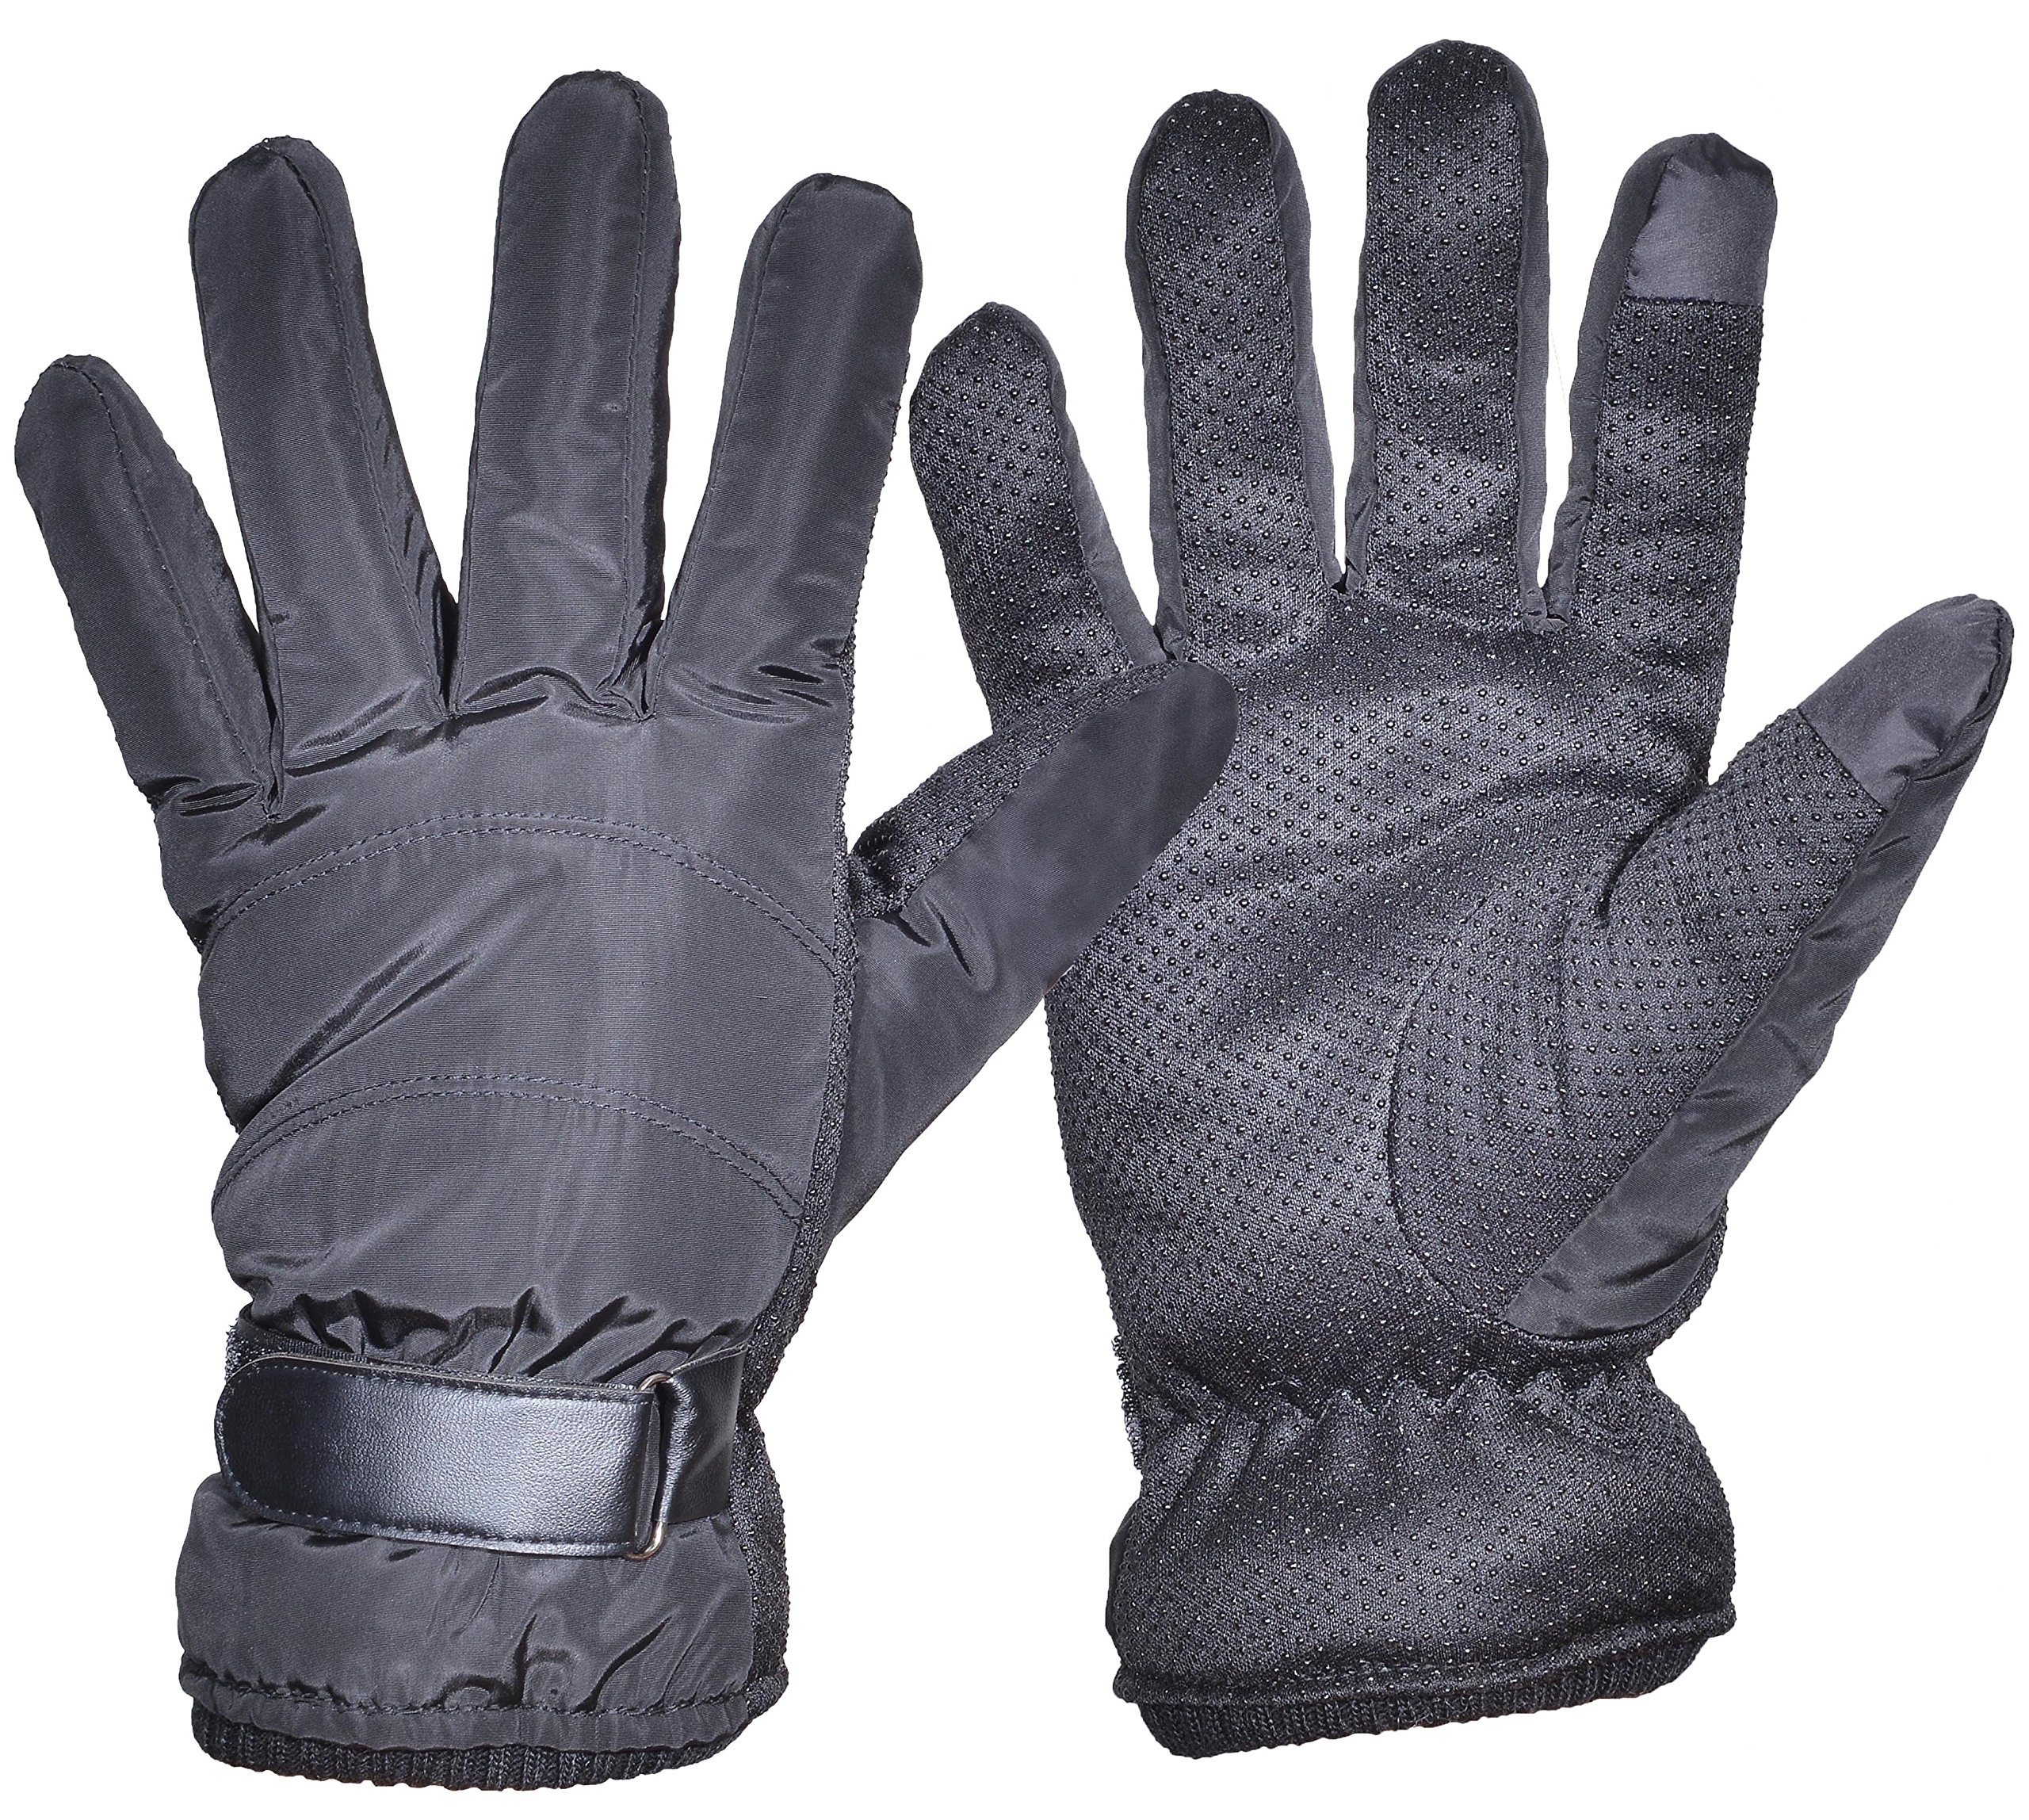 Outrip Men's Driving Gloves Winter Warm Touch Screen Fleece Lined Cycling Gloves (Black)